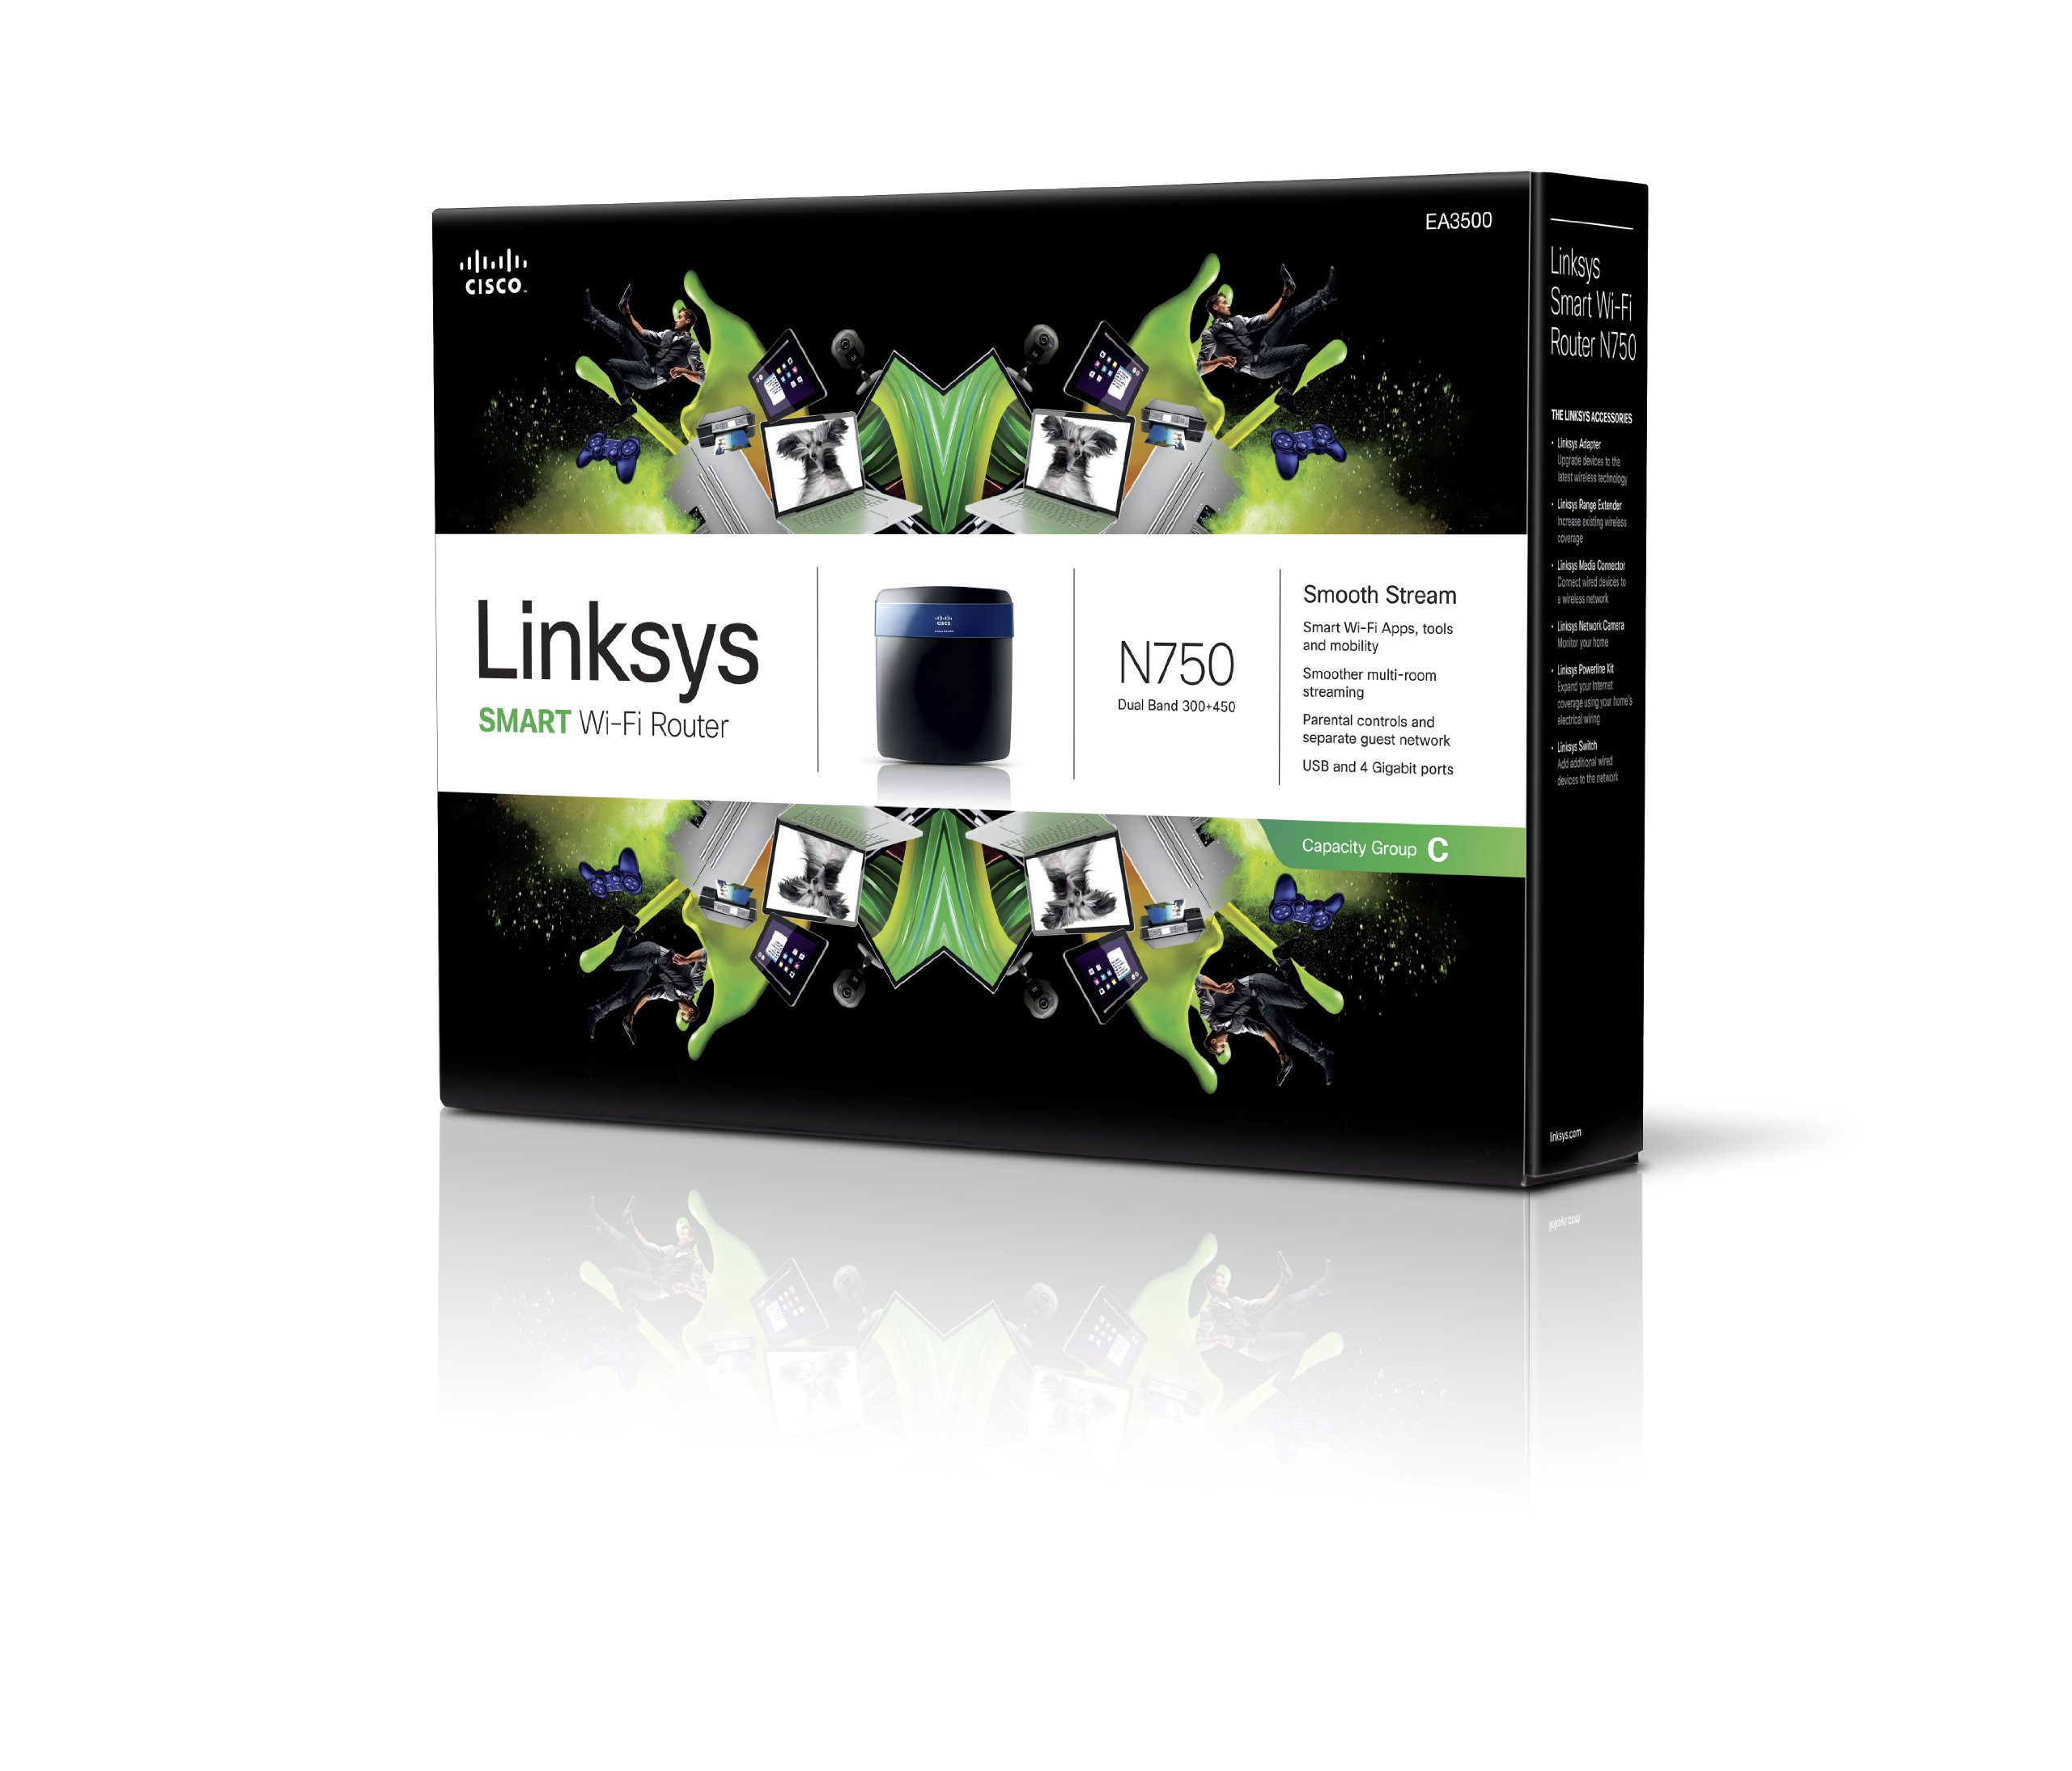 Linksys N750 Wi-Fi Wireless Dual-Band+ Router with Gigabit & USB